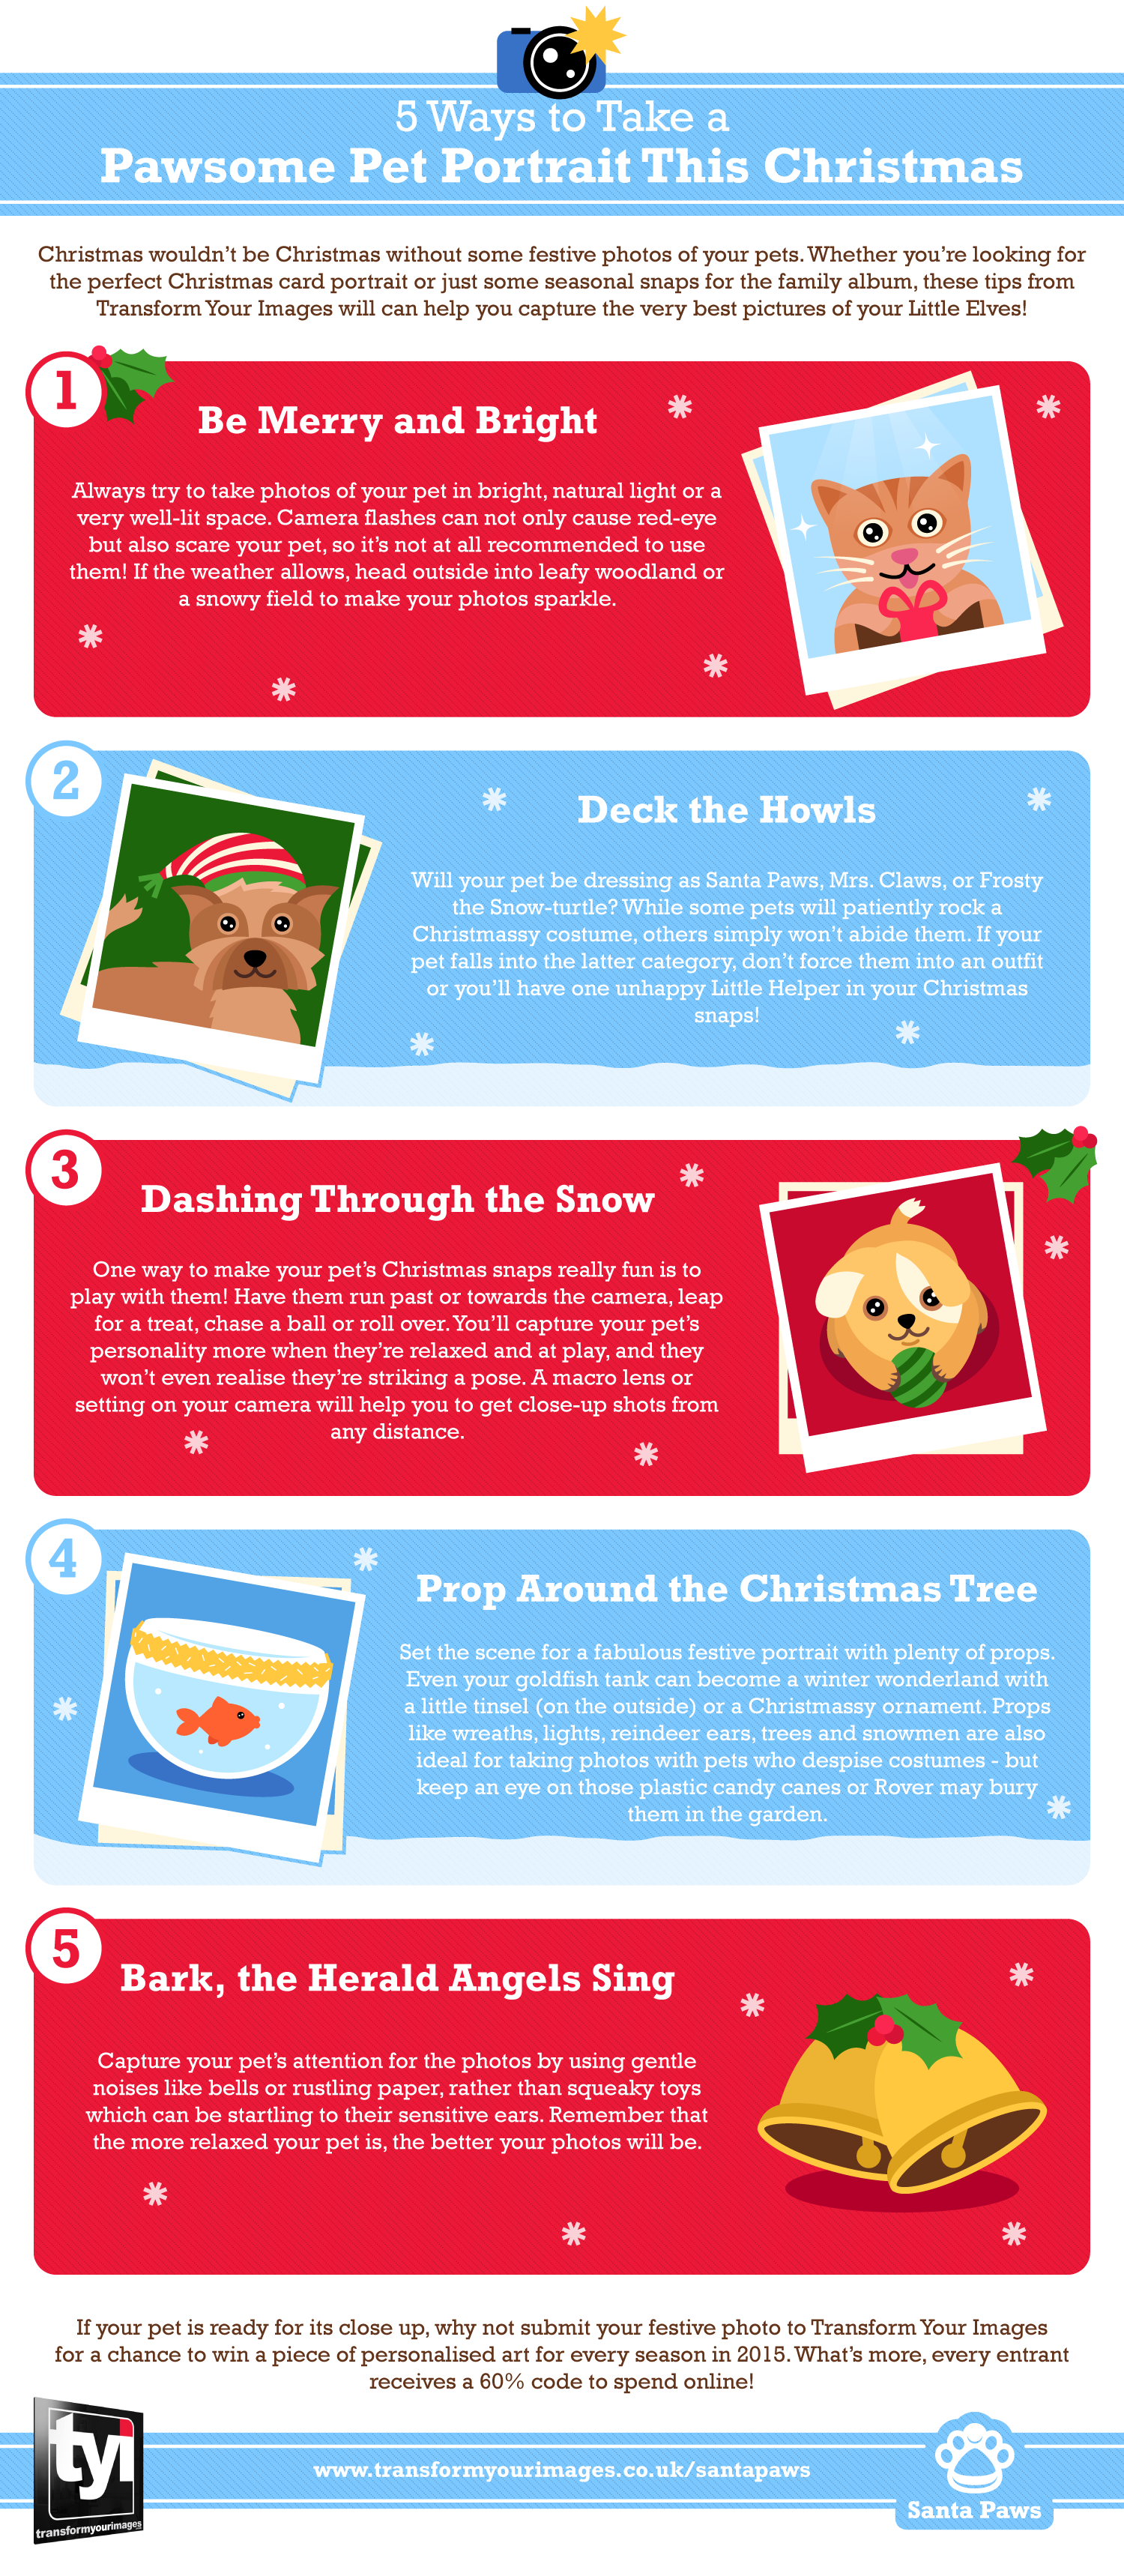 5 Ways to Take a Pawsome Pet Portrait this Christmas Infographic